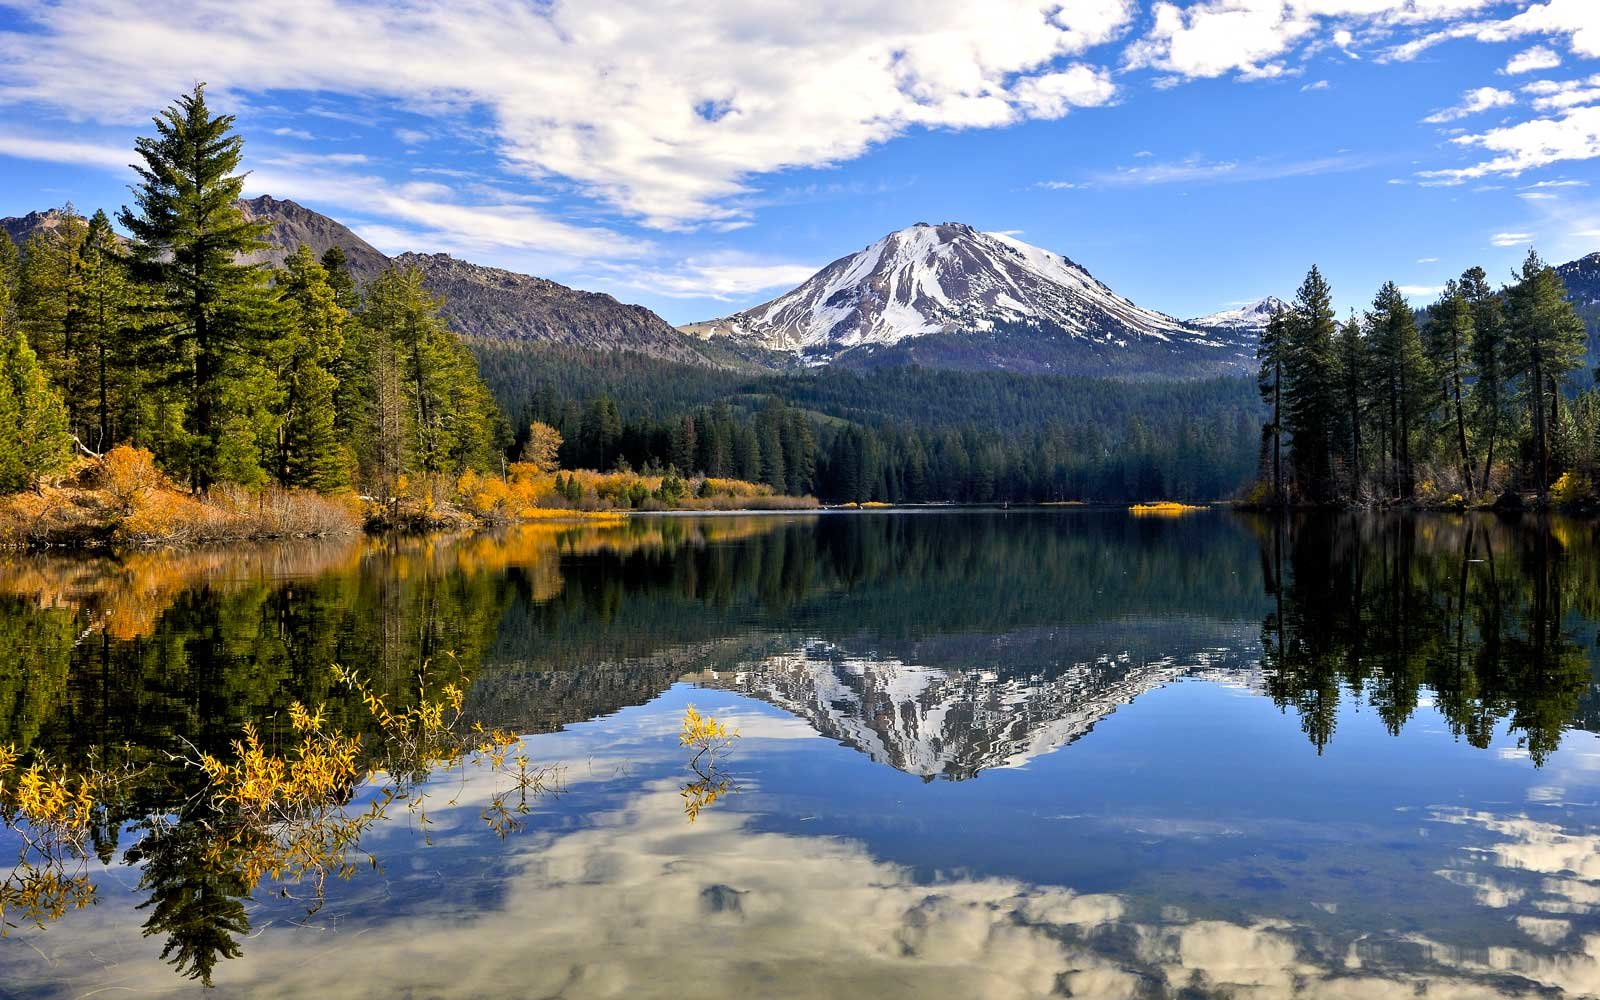 The Best National Parks to See Fall Foliage | Travel + Leisure